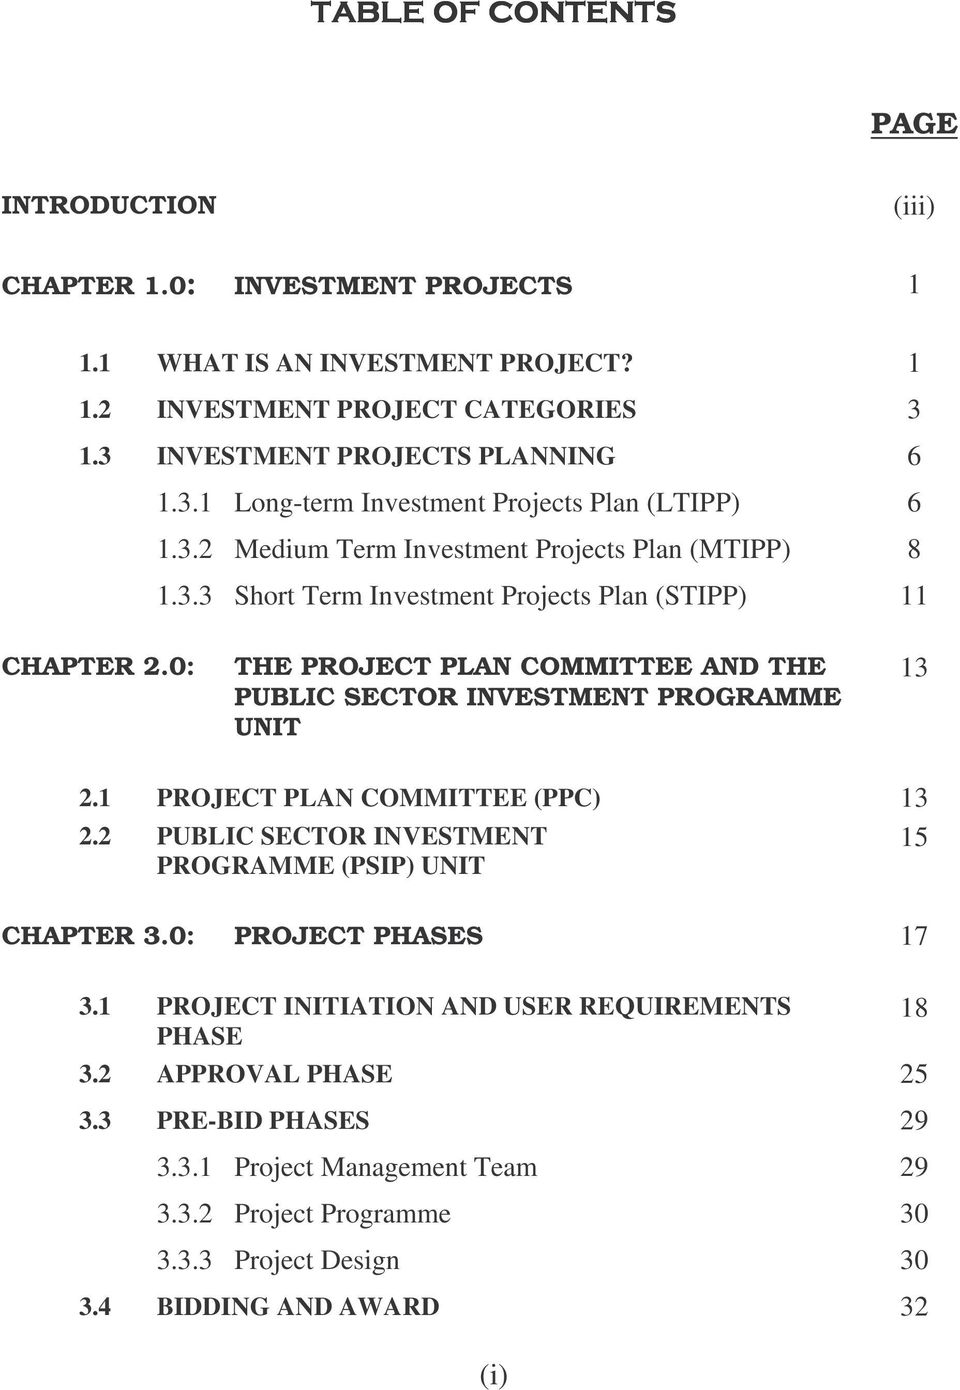 0: THE PROJECT PLAN COMMITTEE AND THE PUBLIC SECTOR INVESTMENT PROGRAMME UNIT 13 2.1 PROJECT PLAN COMMITTEE (PPC) 13 2.2 PUBLIC SECTOR INVESTMENT 15 PROGRAMME (PSIP) UNIT CHAPTER 3.